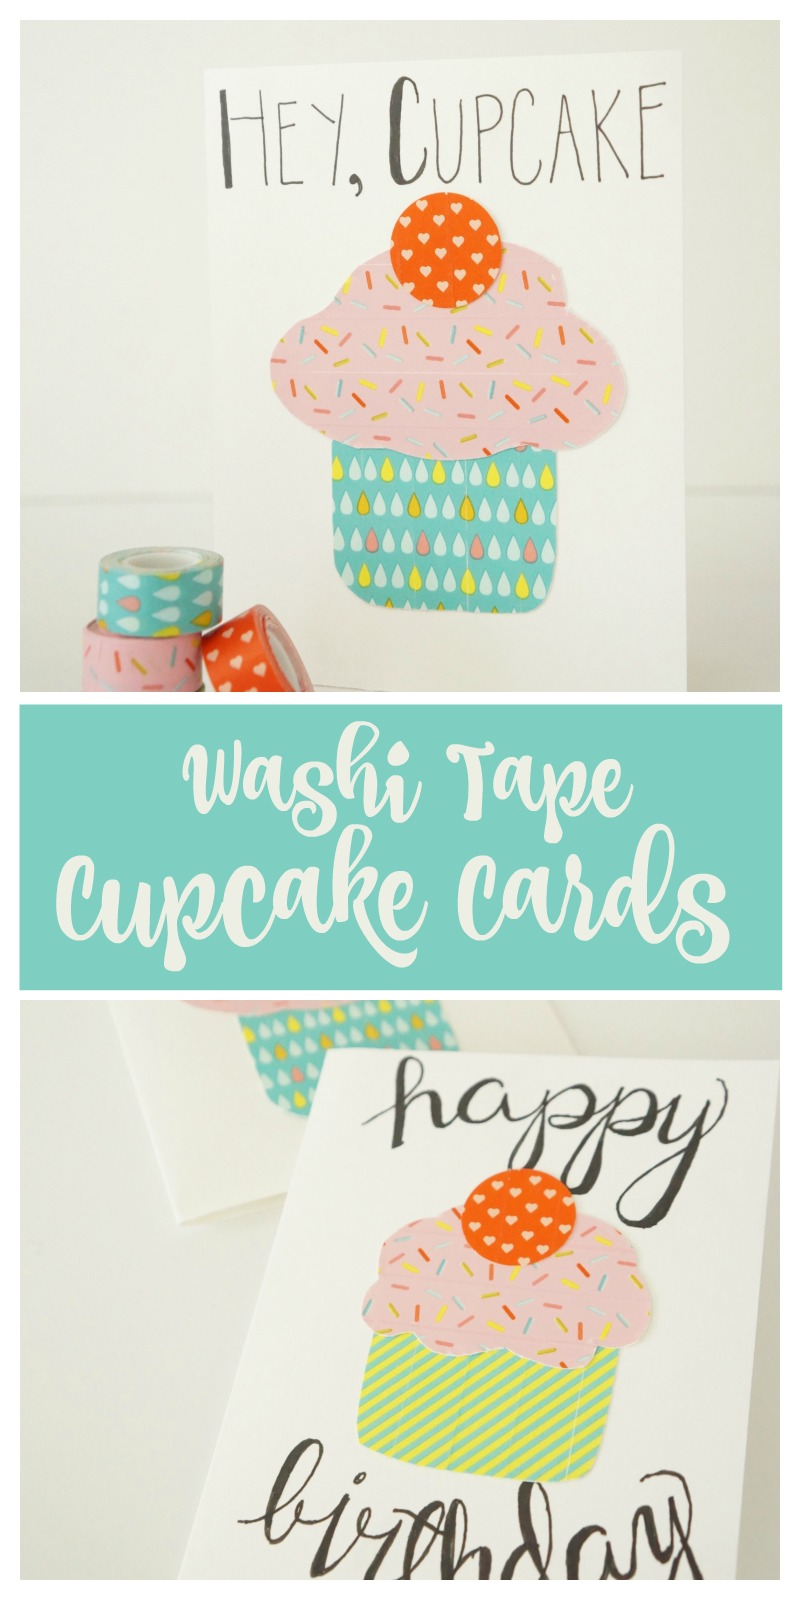 Too cute!! Love these simple cupcake birthday cards made from washi tape!